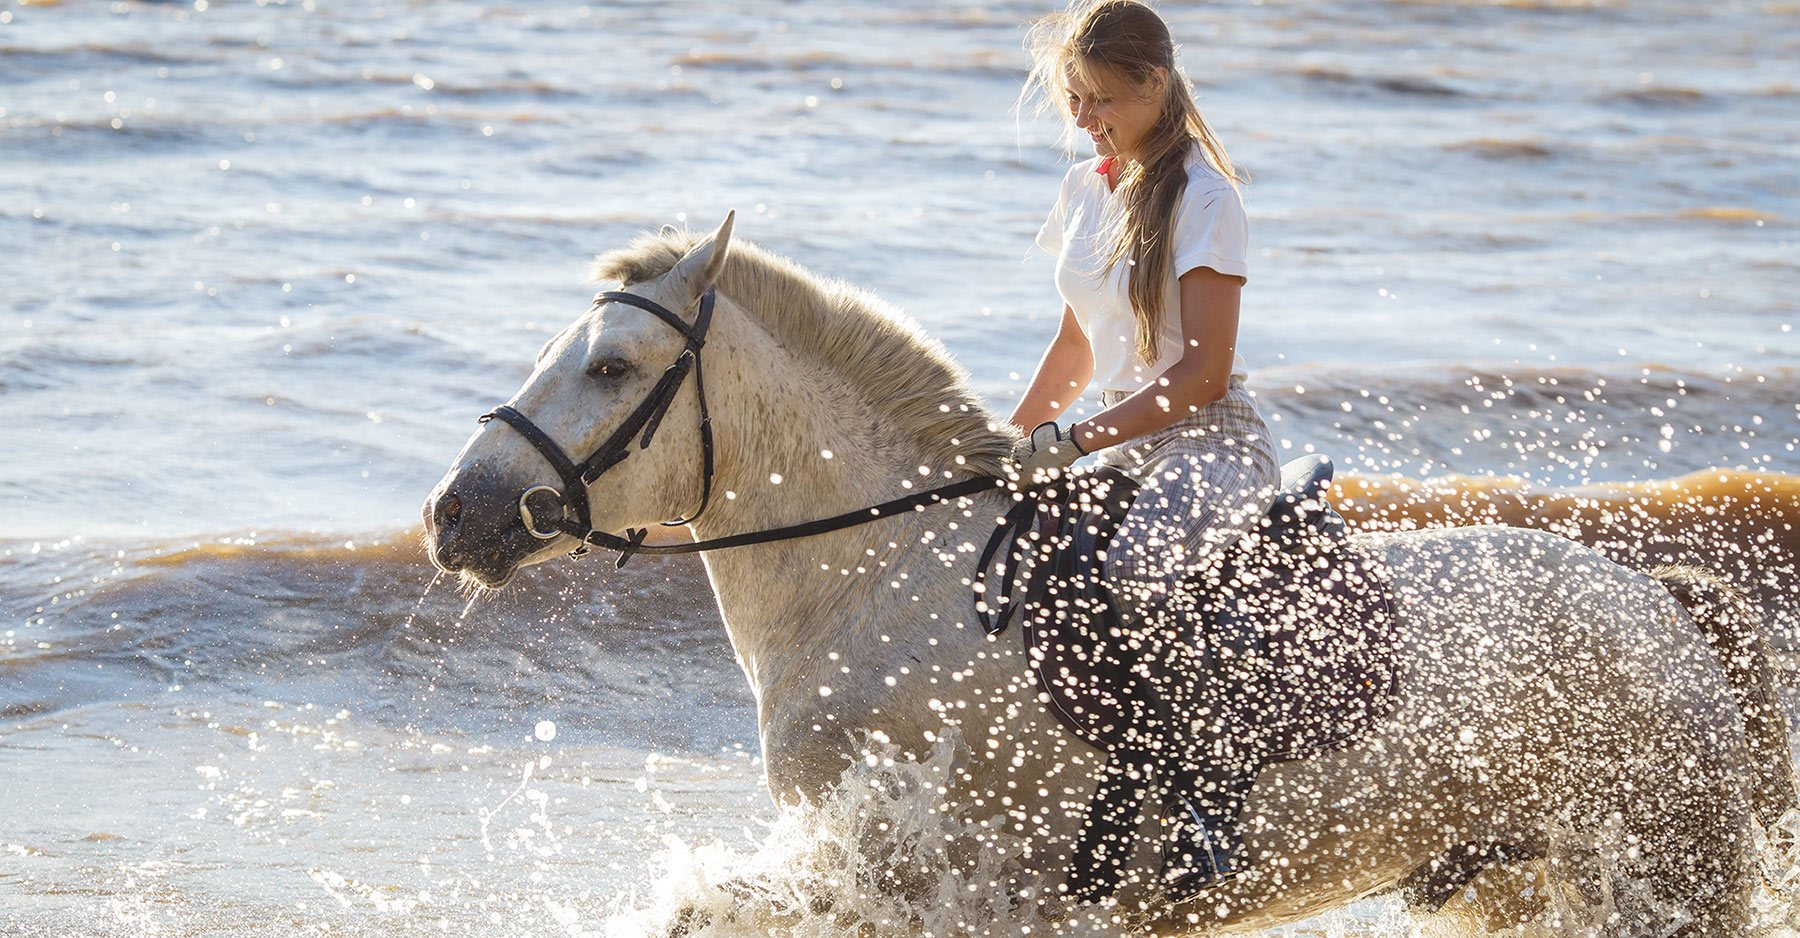 a horse in water